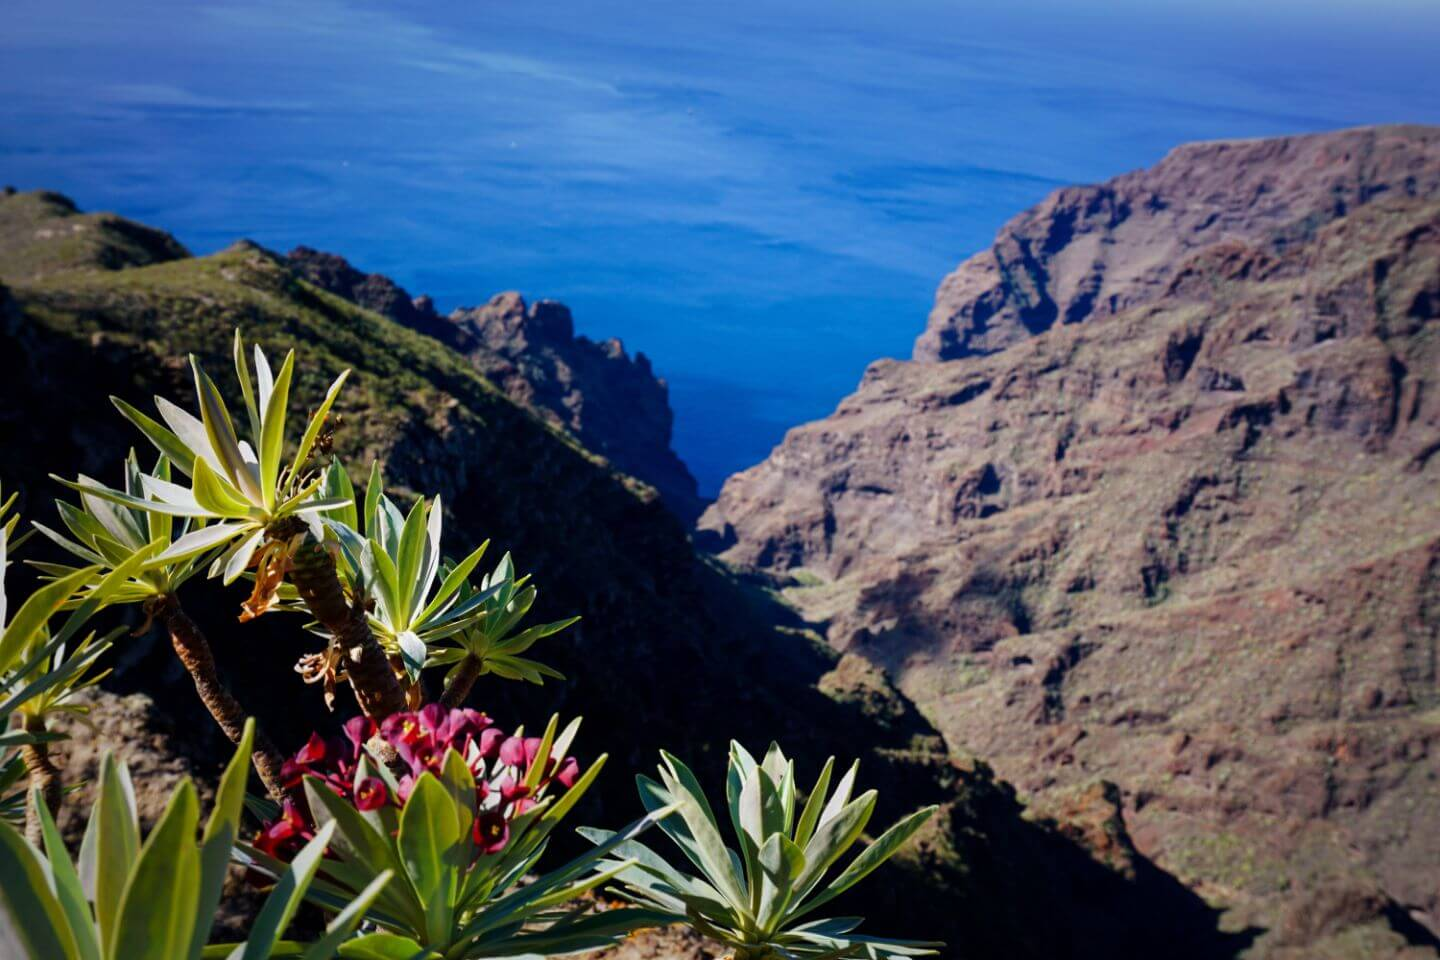 View of Barranco Seco, Los Gigantes Cliffs, Tenerife